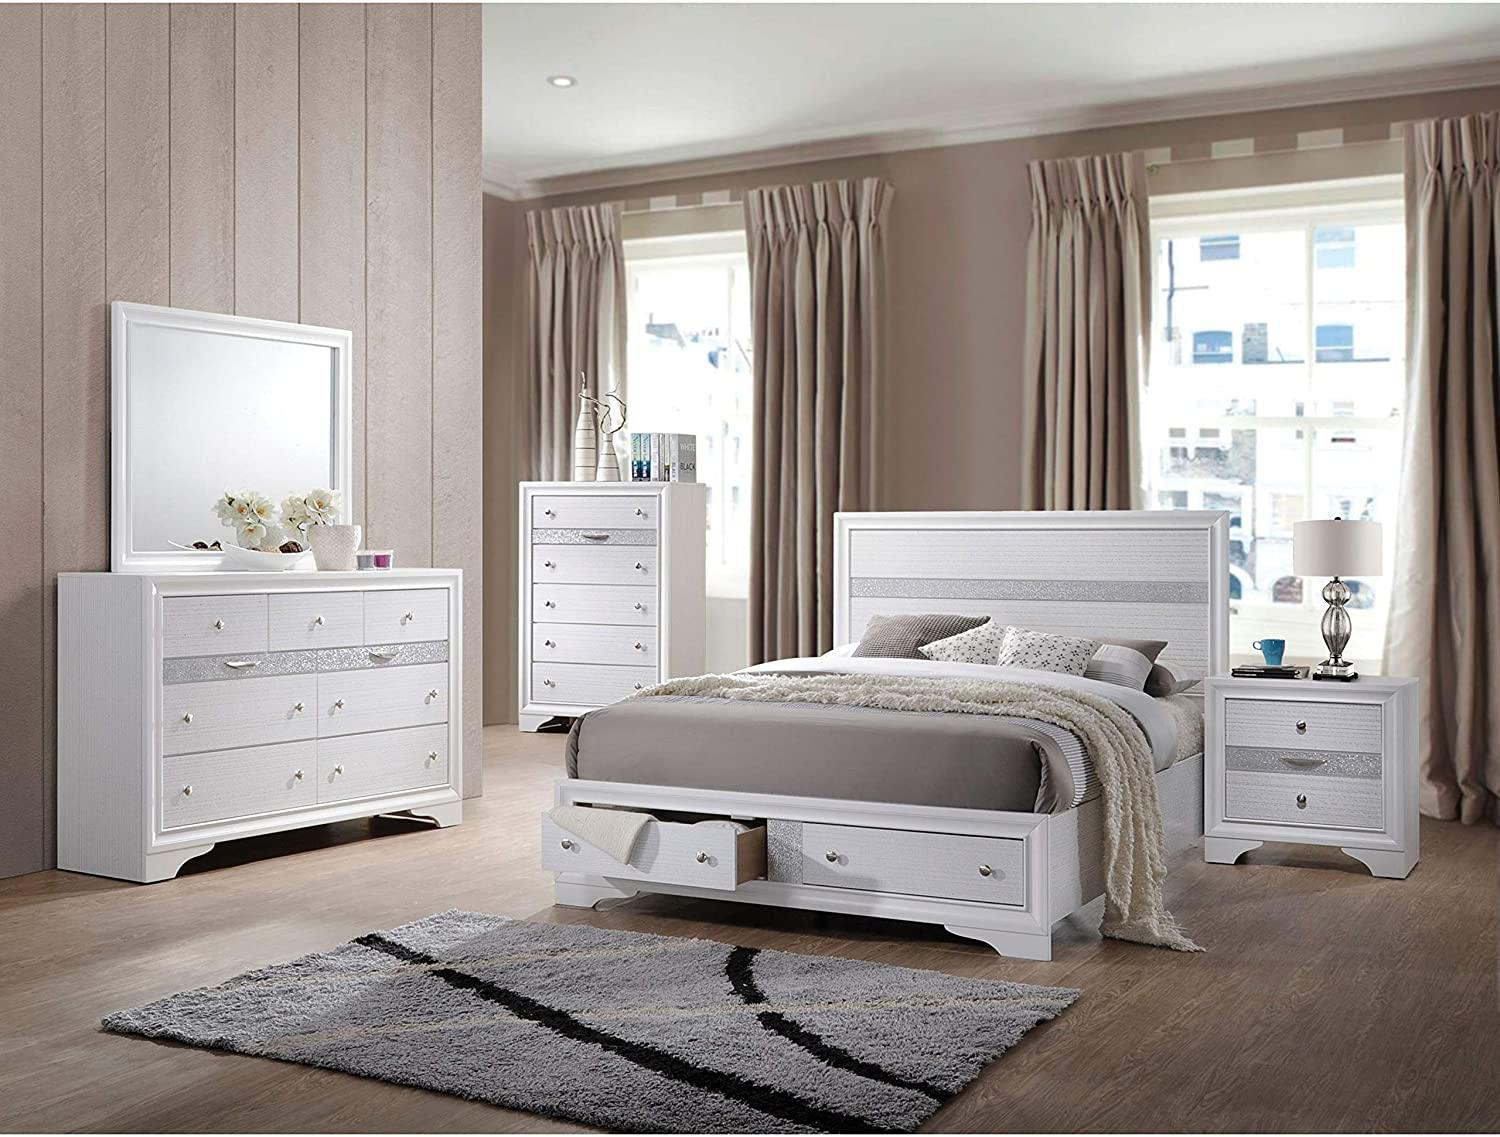 King Size Platform Bed With Storage Drawers, White - My USA Furniture